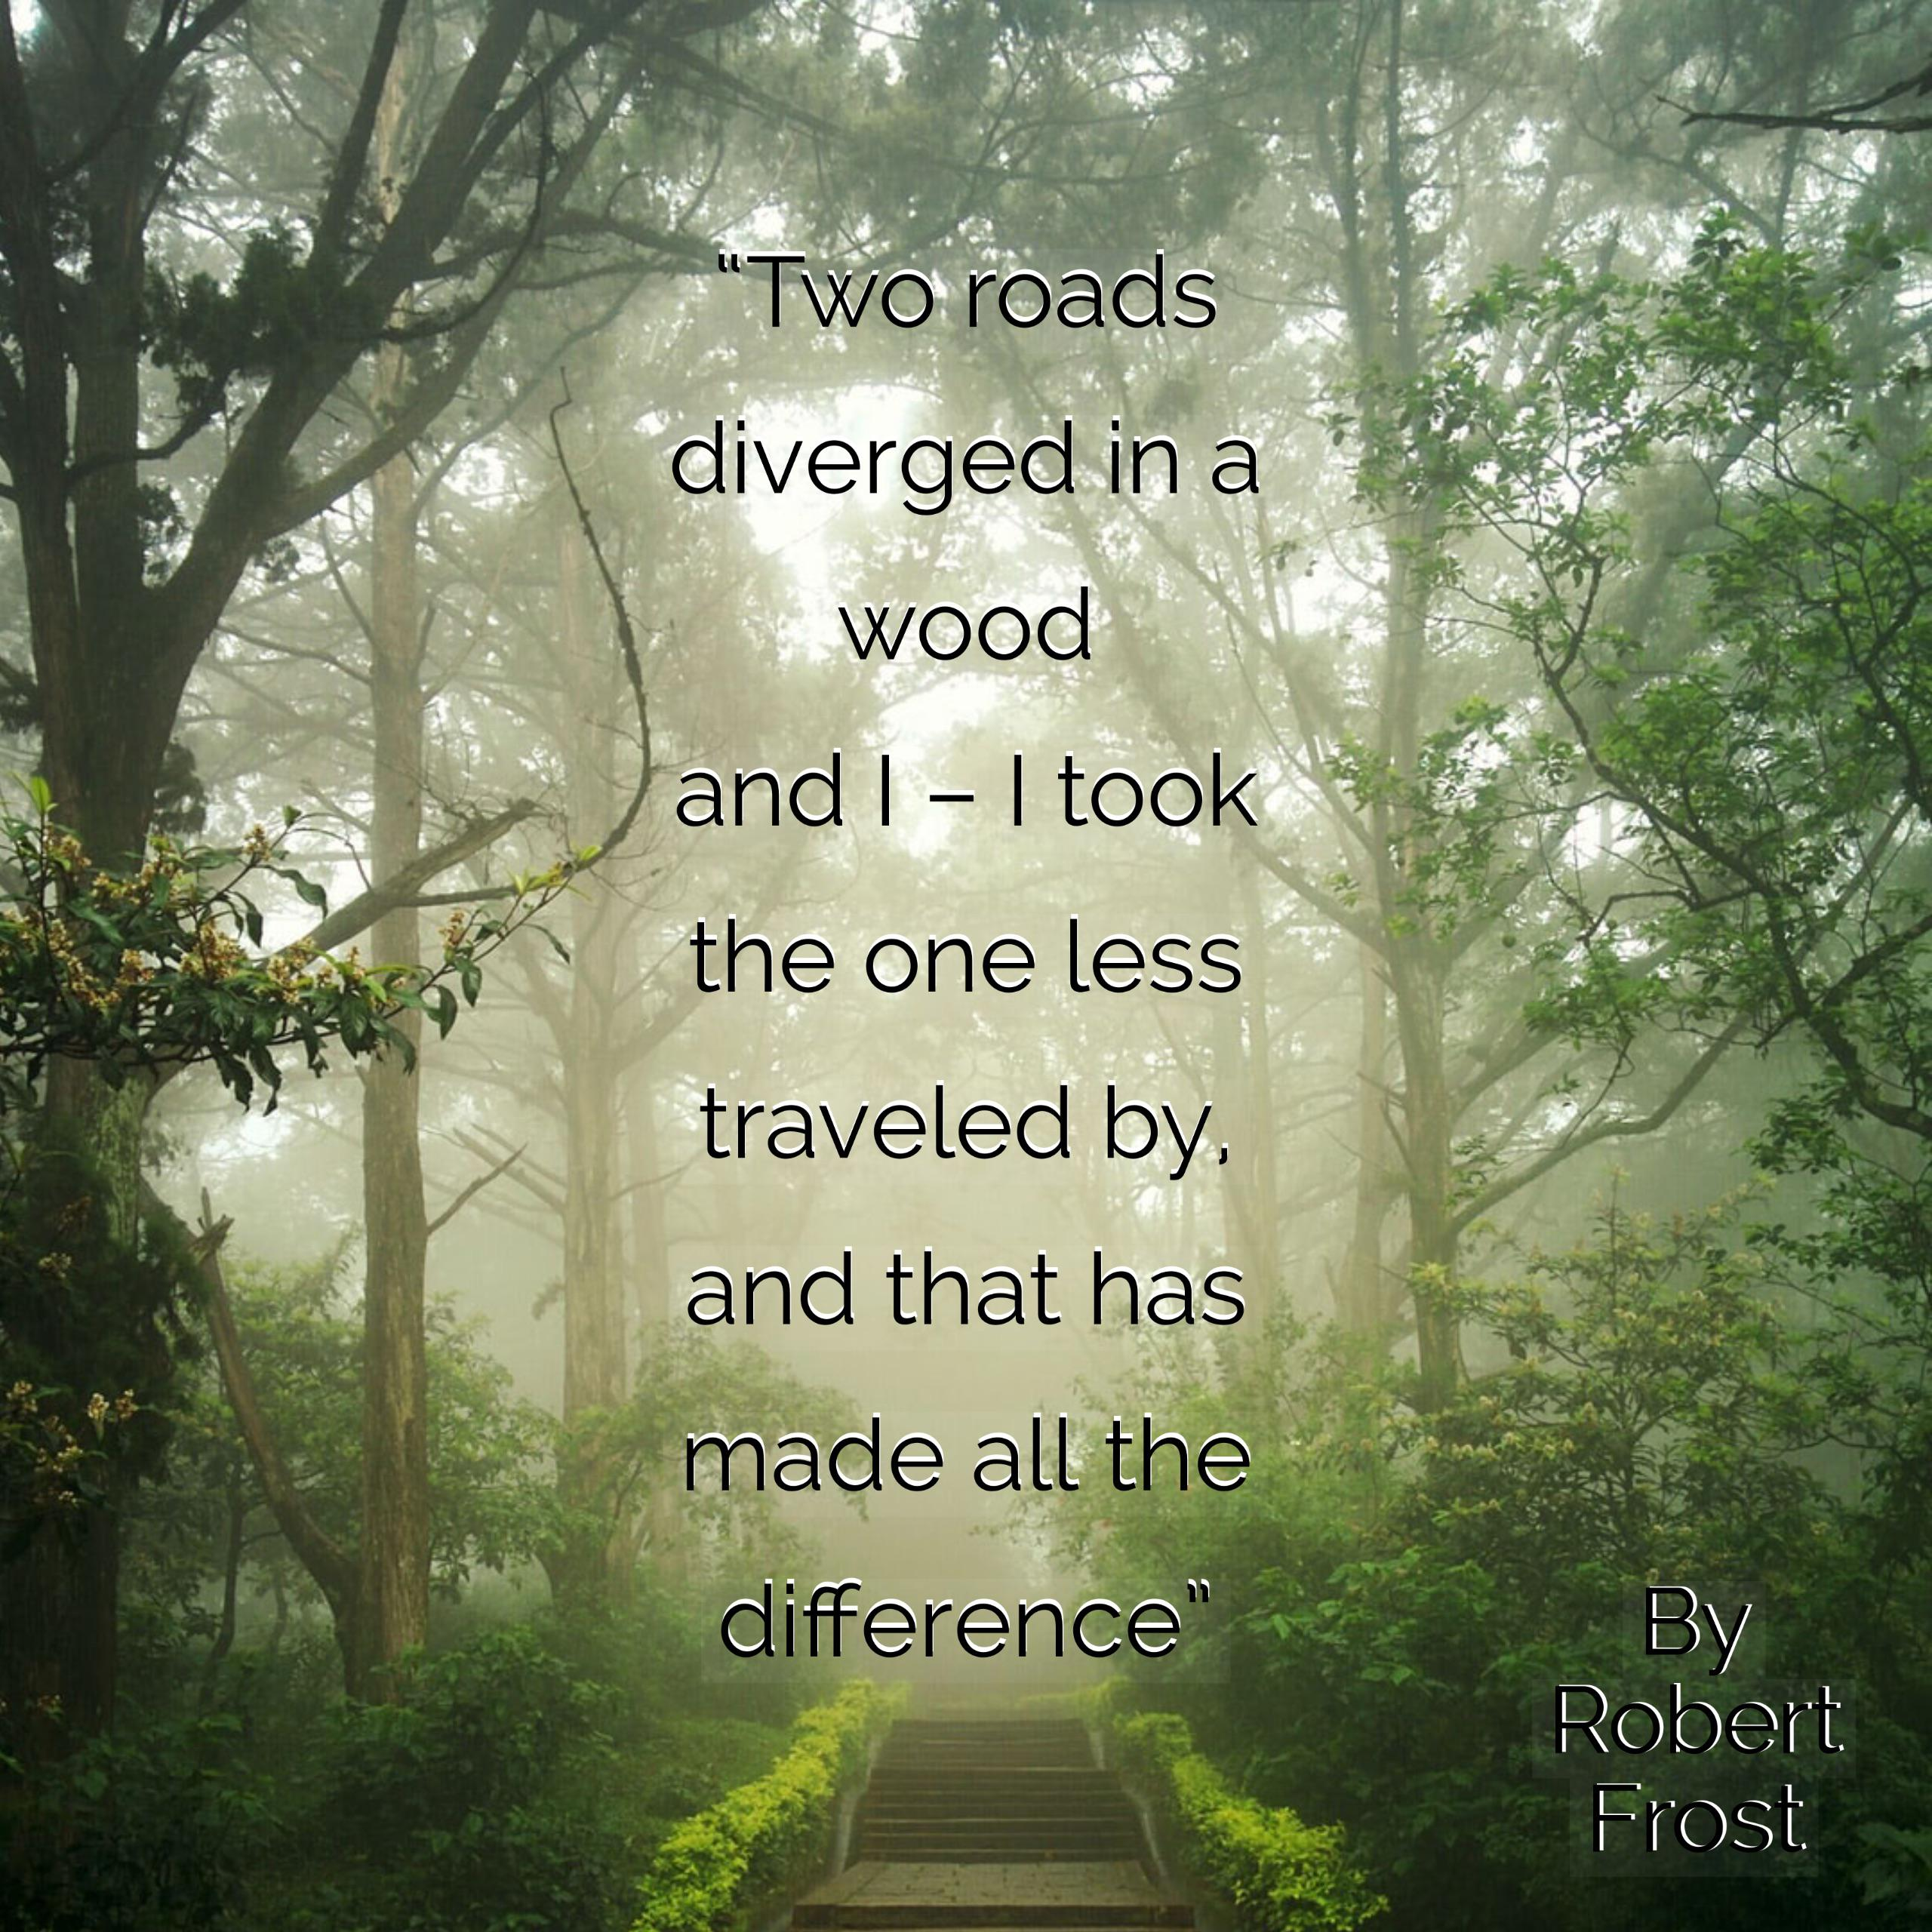 """ Two roads diverged in a wood and I-I took the less traveled by and that has made all the difference"" – Robert Frost [2560 x 2560]"